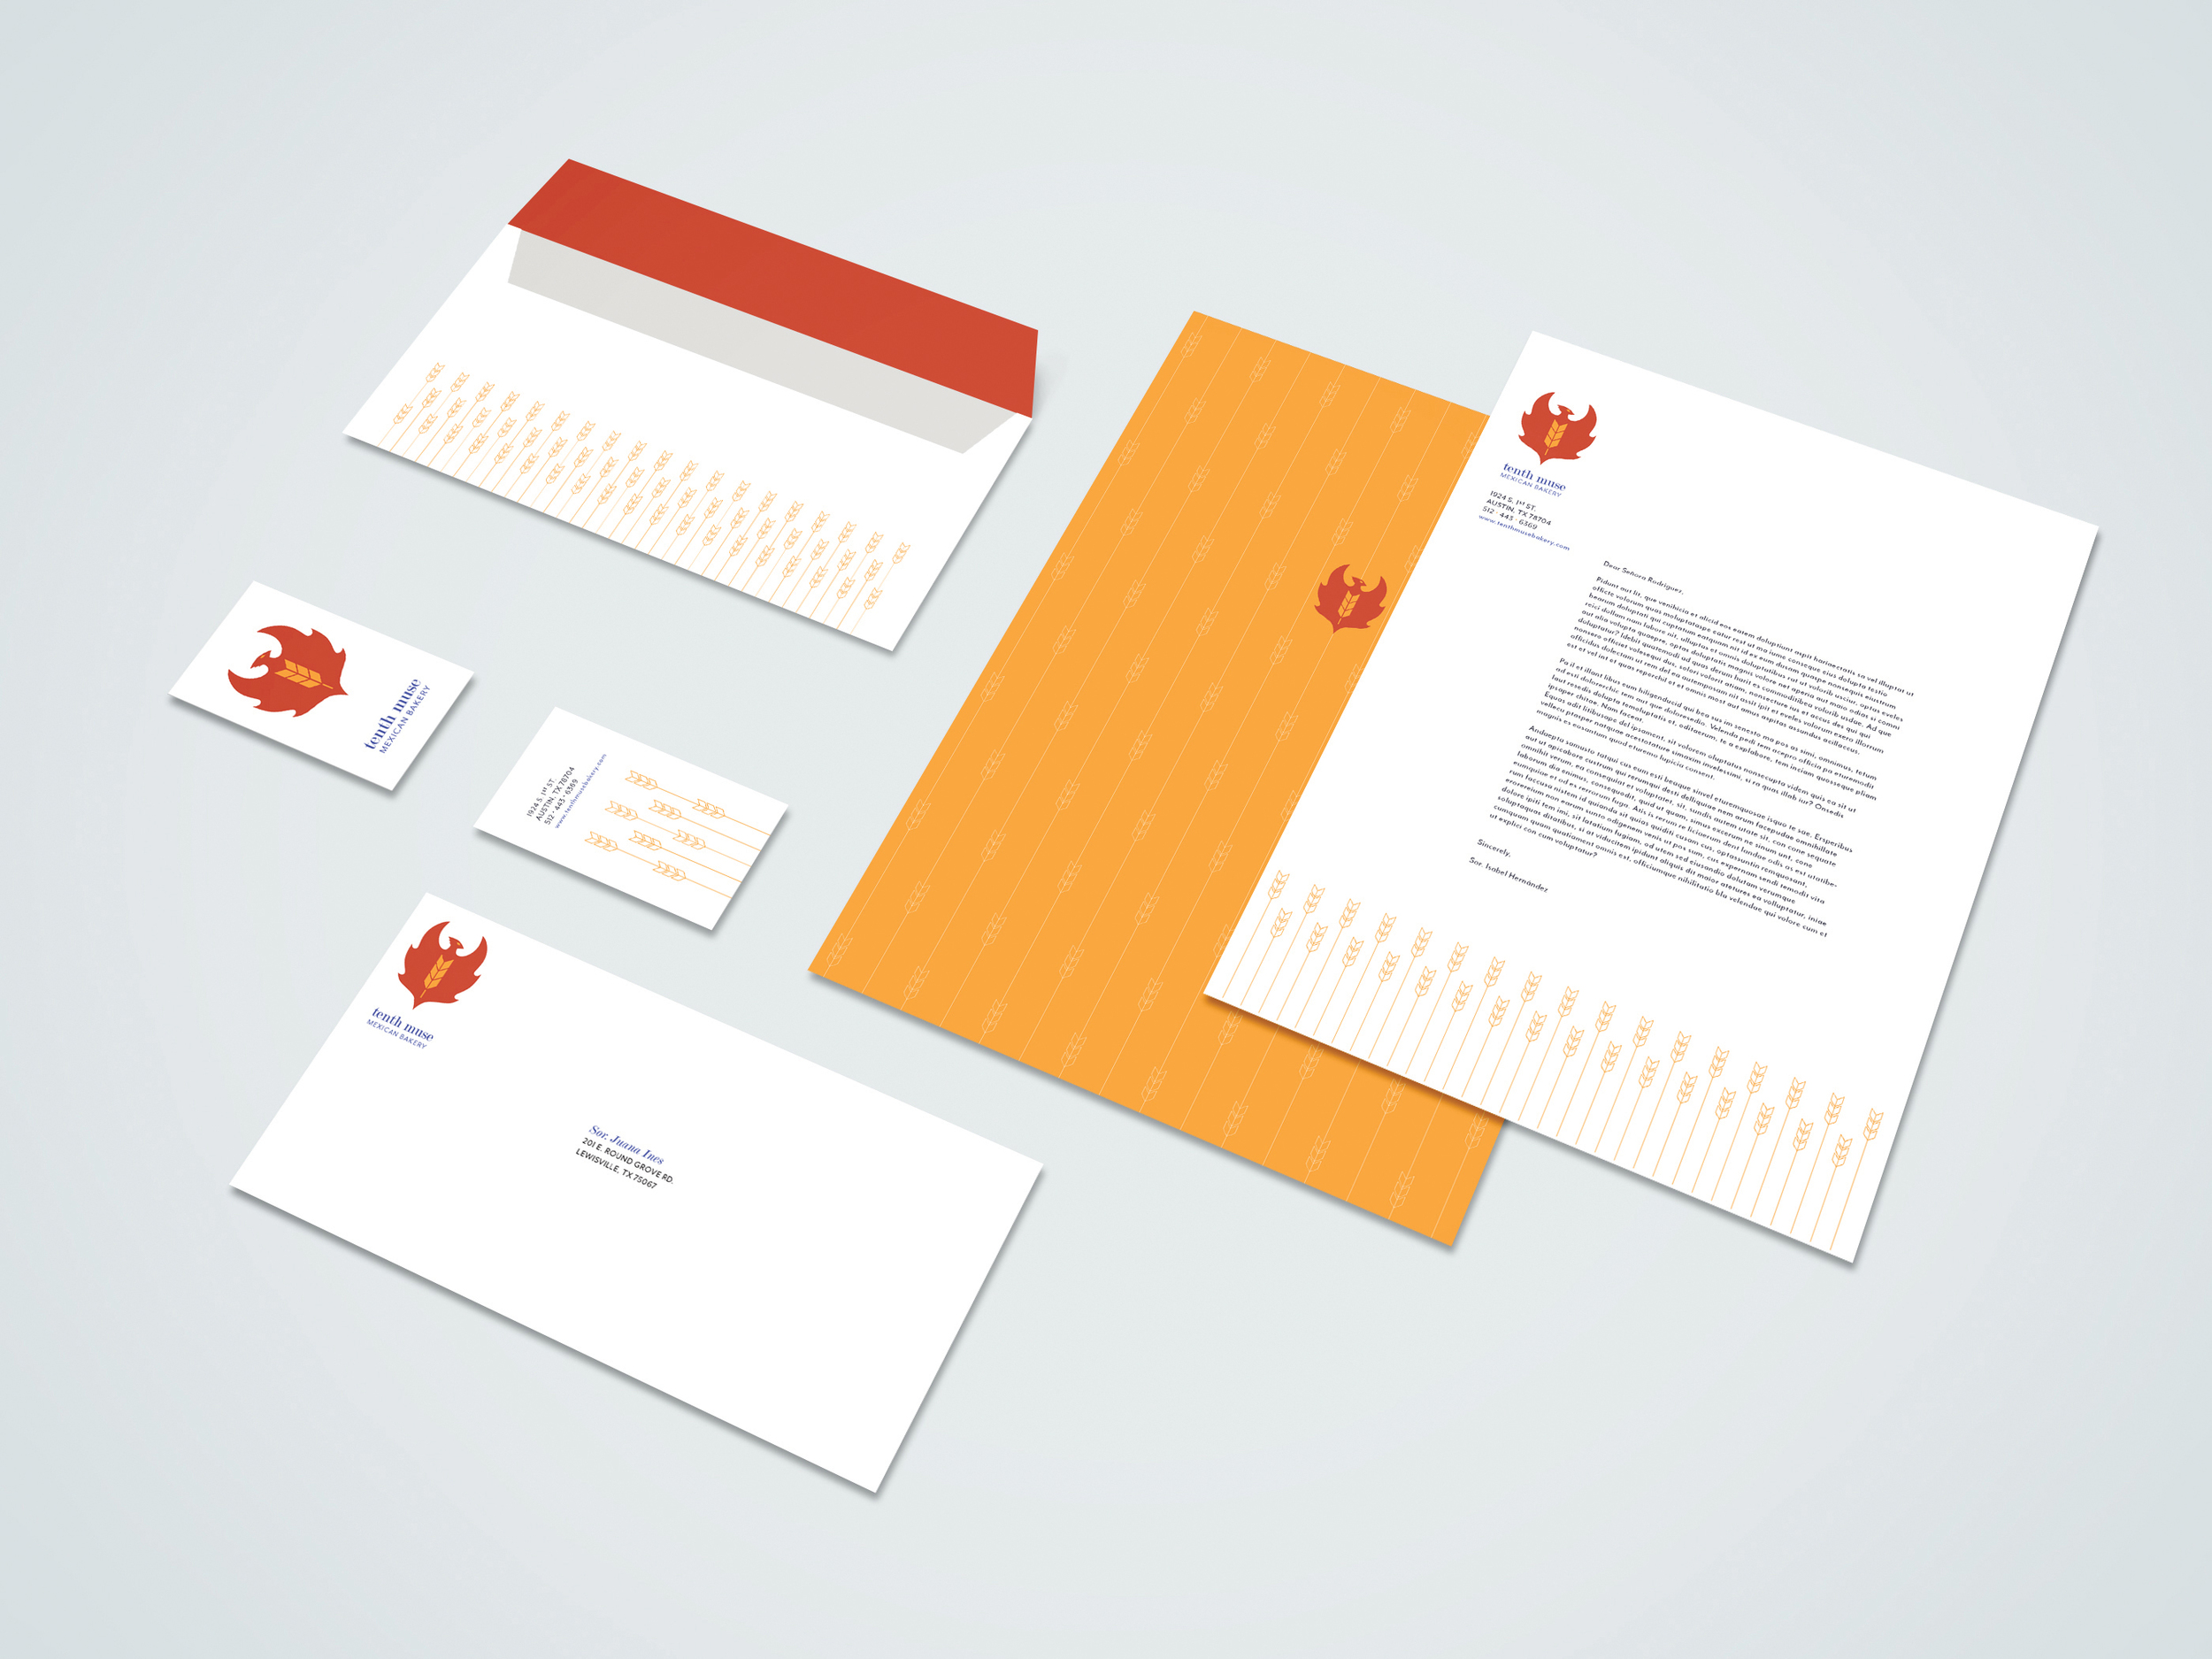 Branding-Stationery Mockup Vol.5.jpg